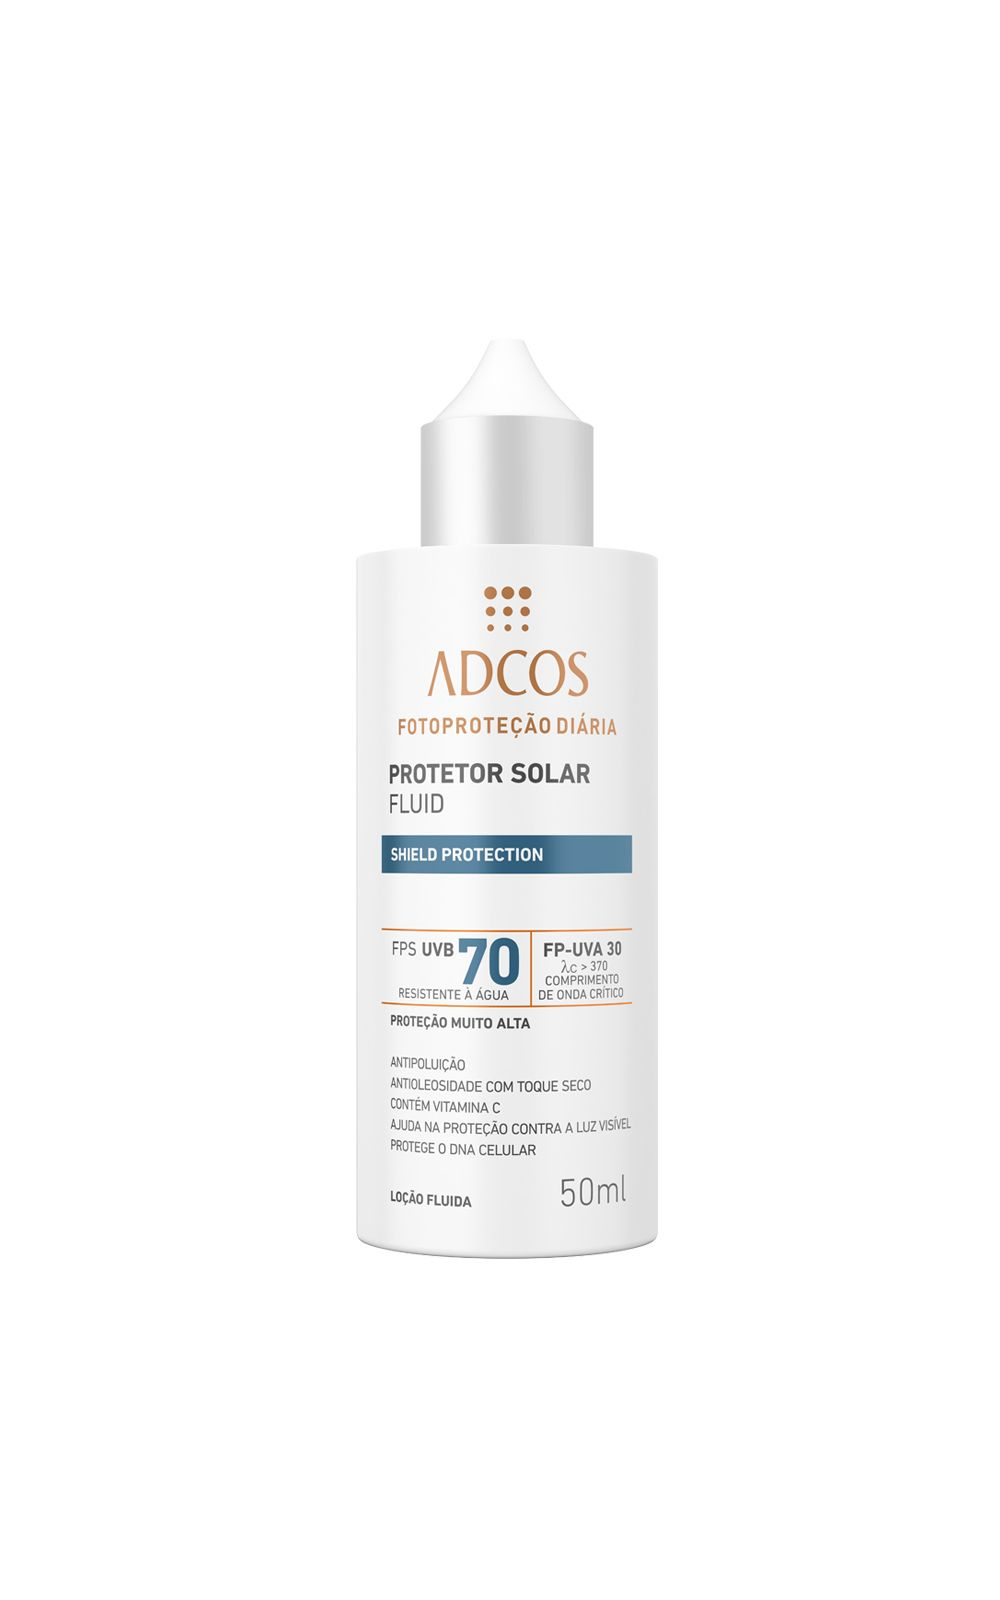 Foto 1 - Protetor Solar Shield Protection FPS 70 Fluid Incolor Adcos - 50ml